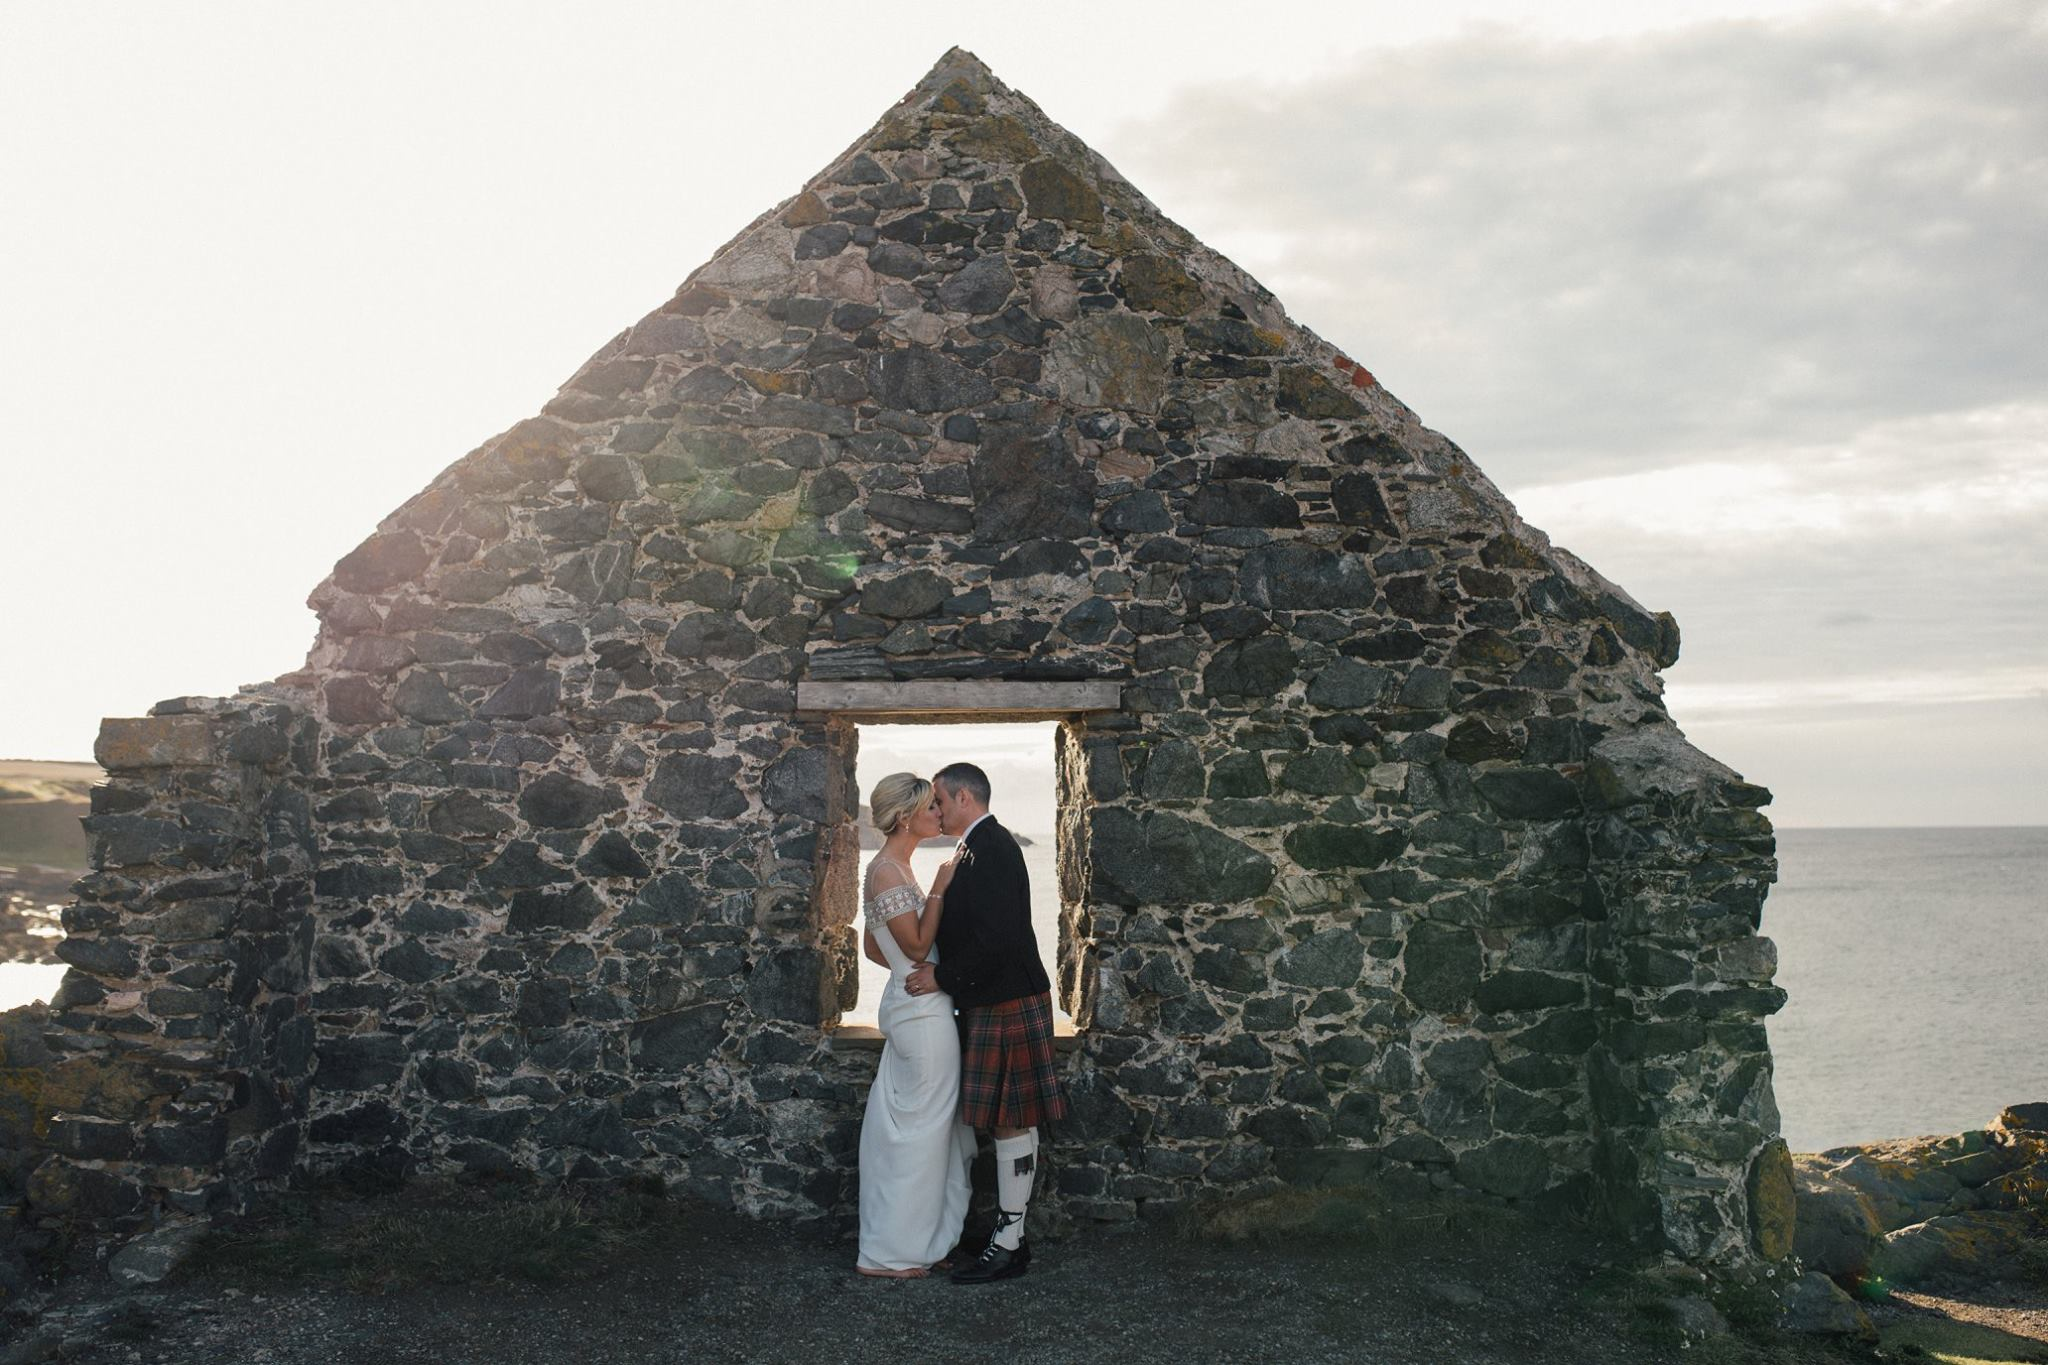 Katherine & Chris - This lady is an absolute gem of a photographer. I feel really lucky that she captured our wedding day and we absolutely adore the photos. The moments she captured will be treasured.Puts you completely at ease, which for two people who don't love getting their photo taken, that isn't easy!The photos of us at Portsoy Harbour exceeded all my expectations and can't believe it's us!Thank you Nicola - such a talented and lovely lady Xx